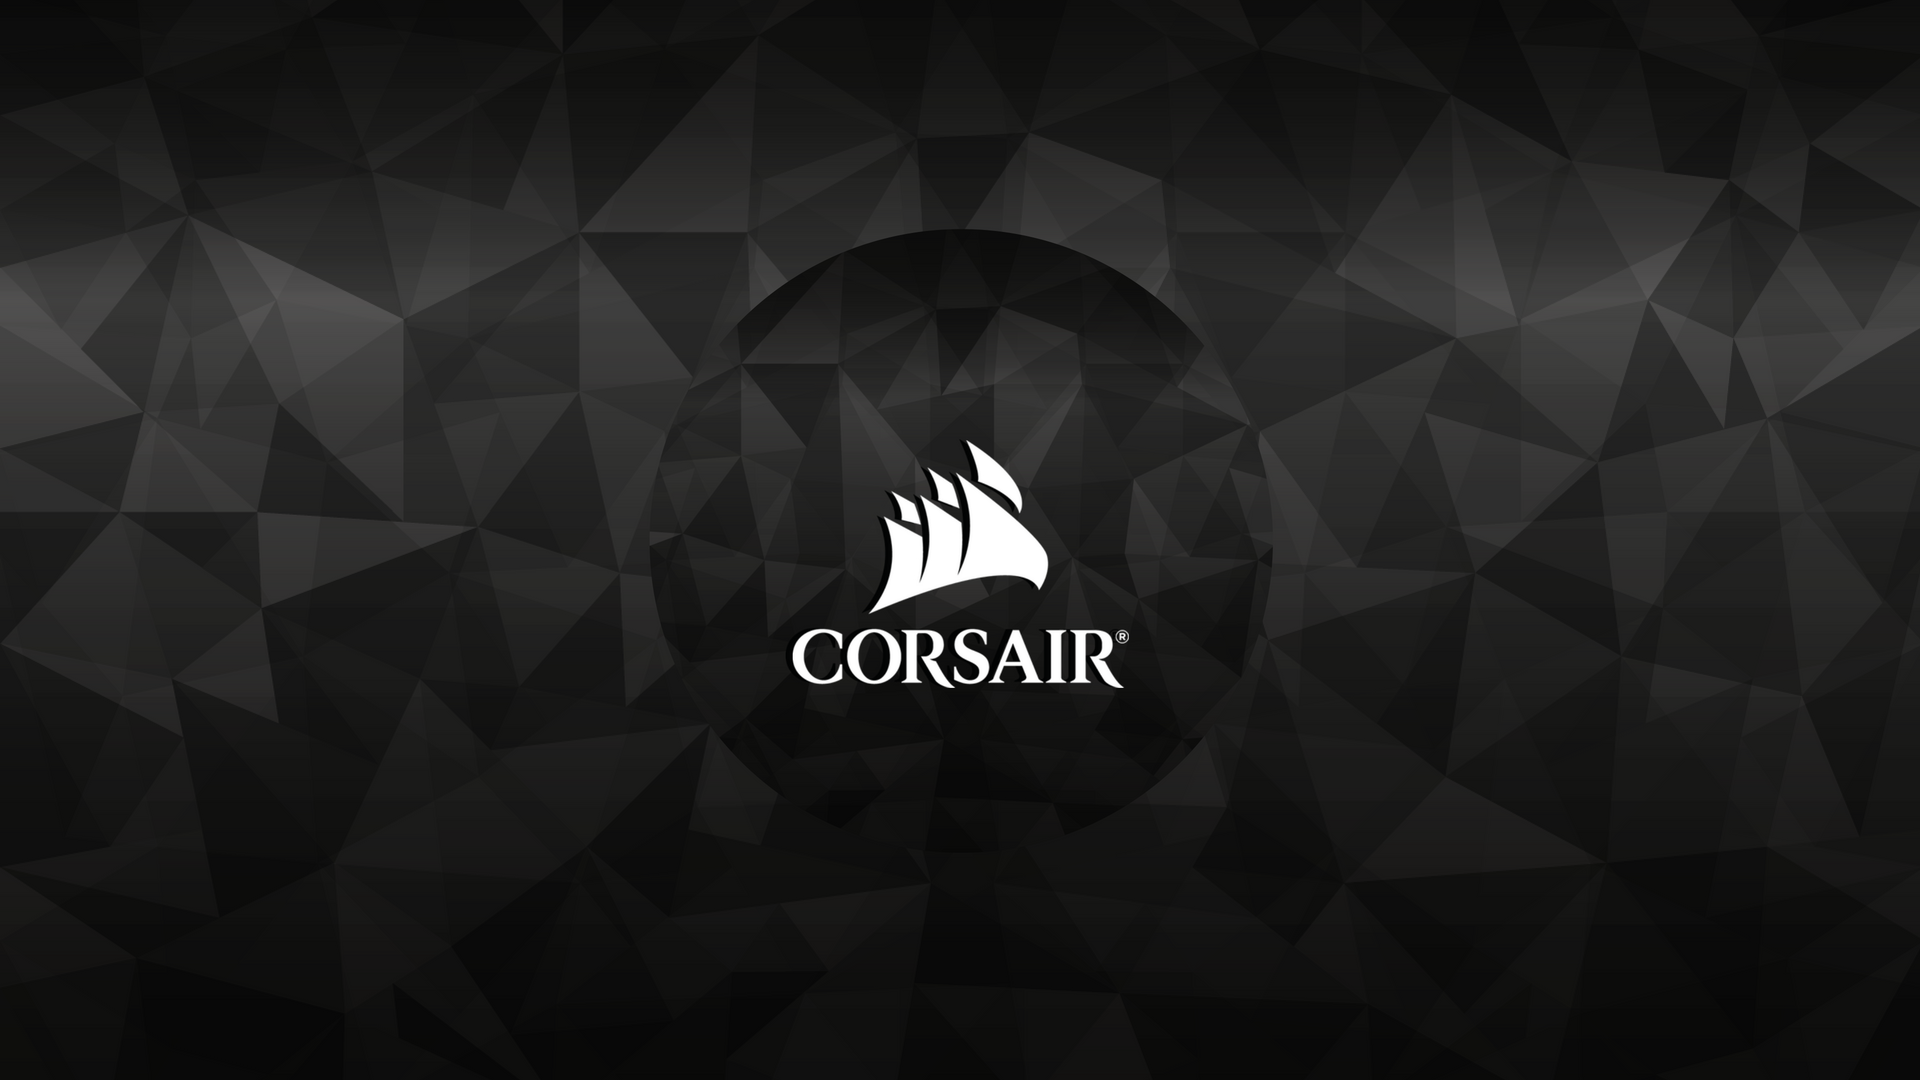 Corsair Wallpaper 19x1080 Png Wallpaper Hd Wallpaper Iphone 6 S Plus